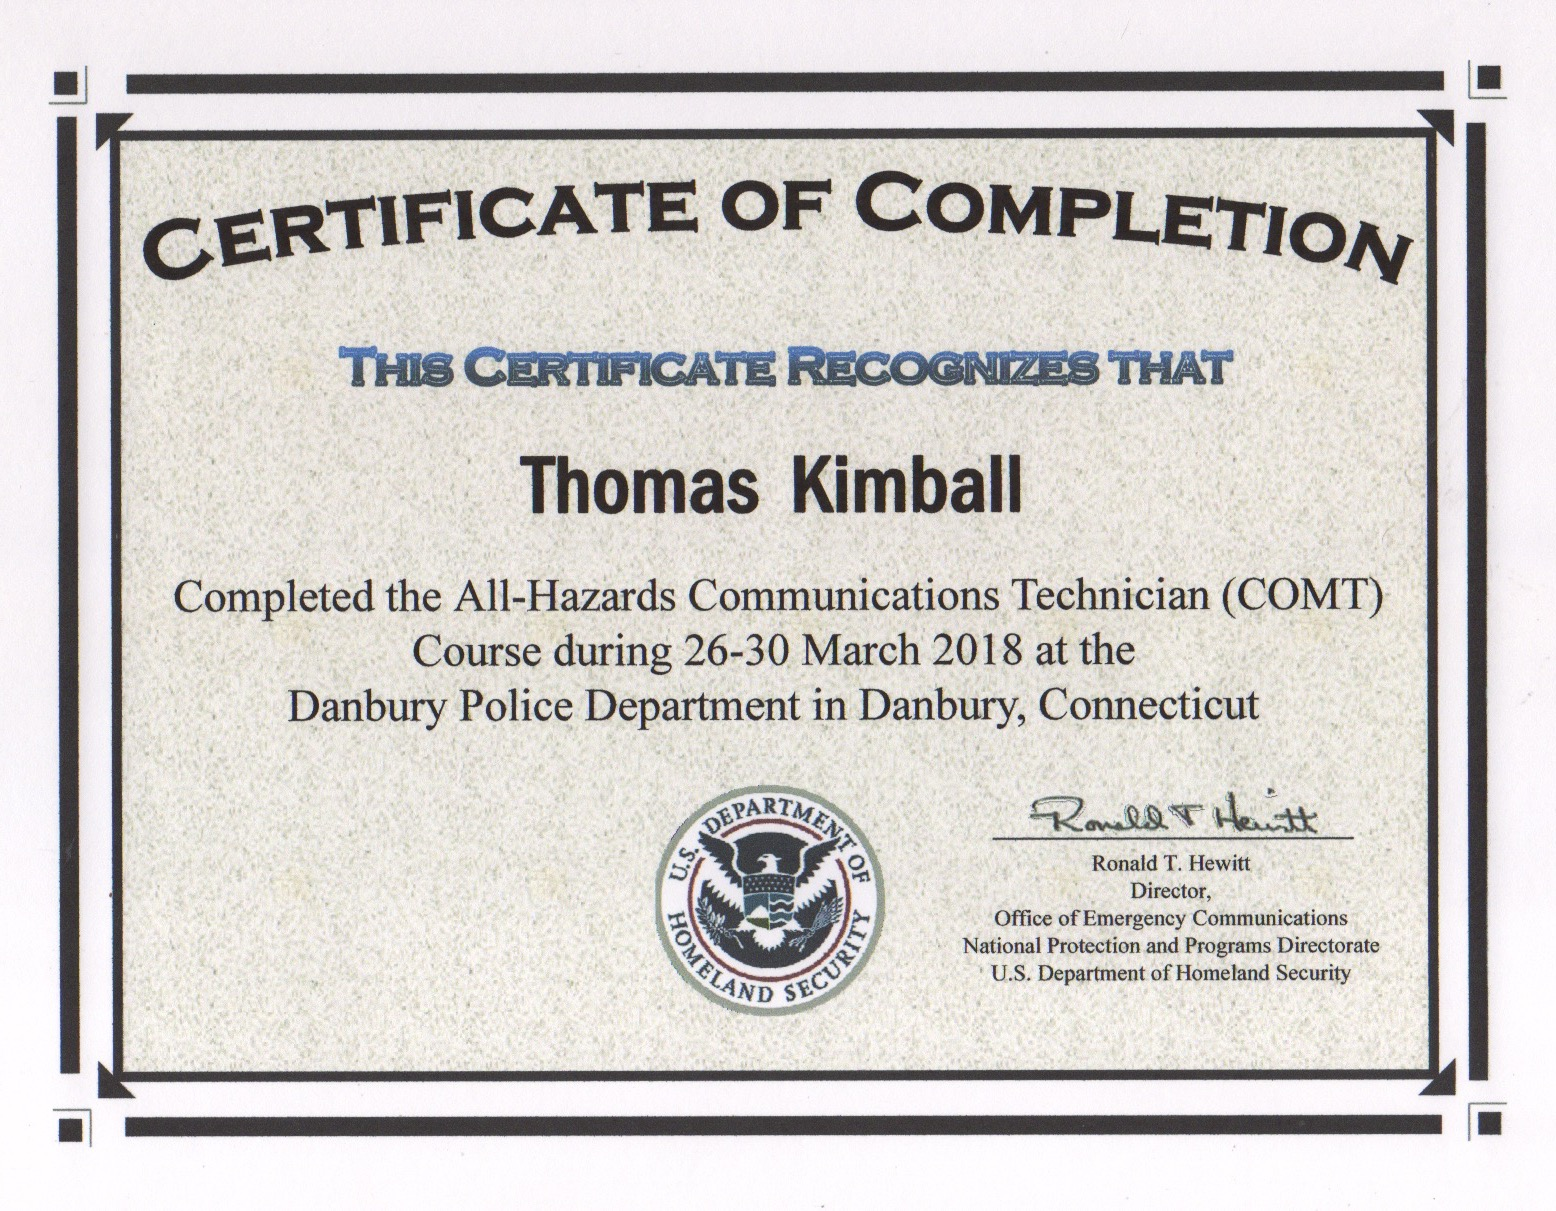 All-Hazards Communications Technician (COMT) Course Certificate